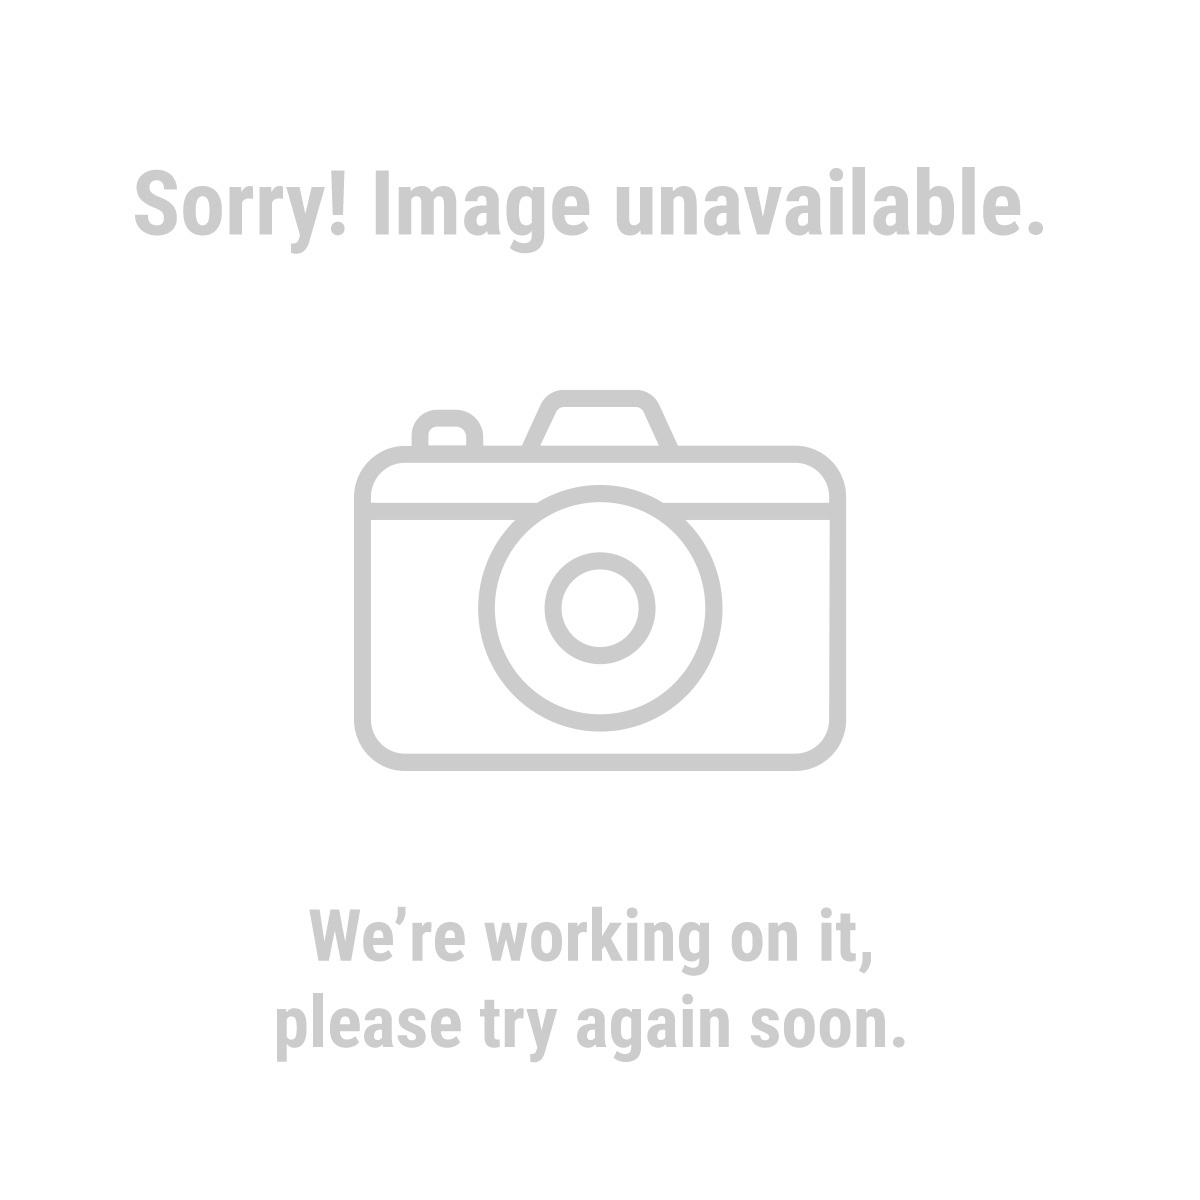 HFT® 61392 12 in.  x 2 in. Red and White Reflective Strips, 10 Piece